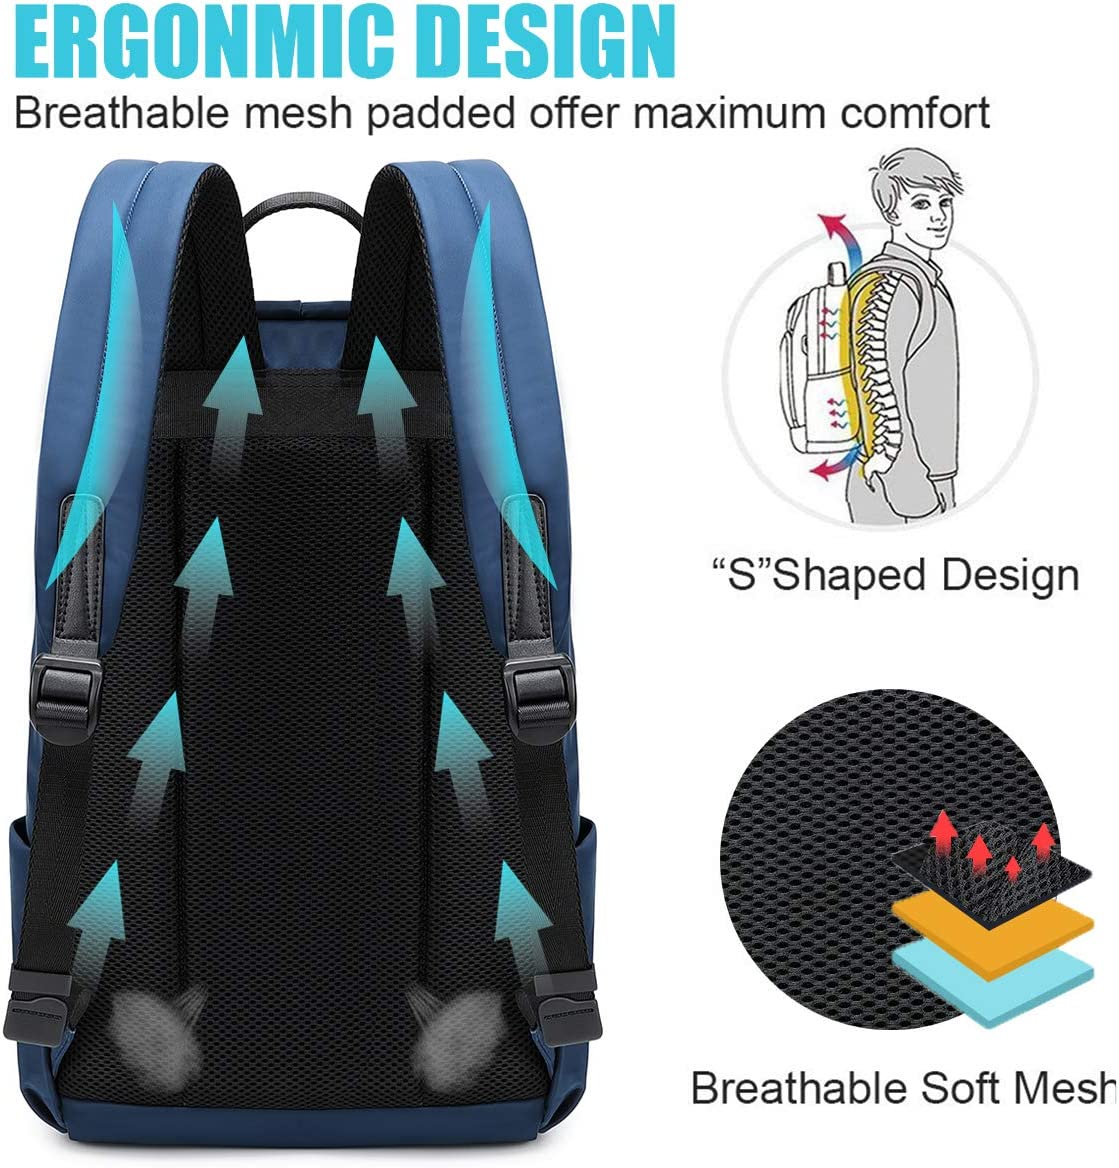 Multipurpose Casual Student Bag Slim Durable Laptop Backpack with Large Compartment Fits 15.6 Inch Notebook or Tablet for University//Business//Travel//Work School Backpack